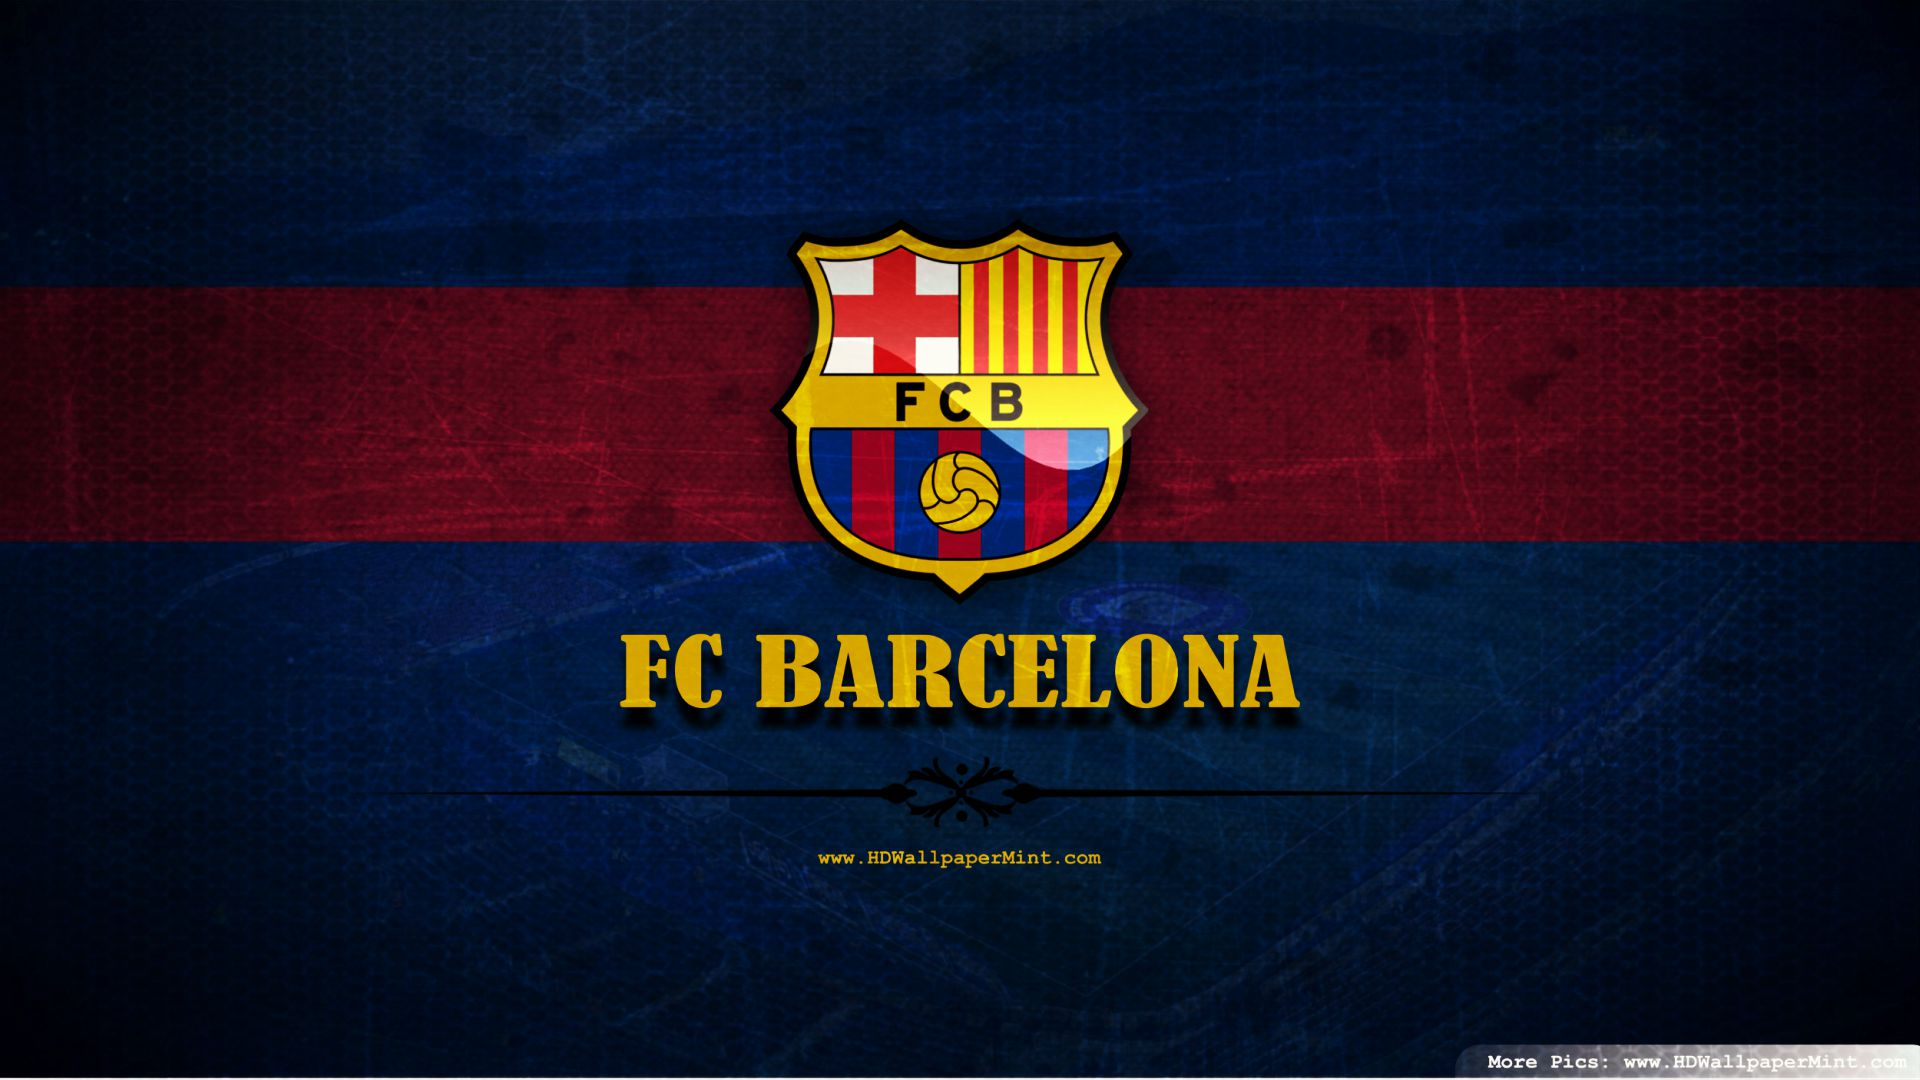 fc barcelona wallpapers HD 1920x1080